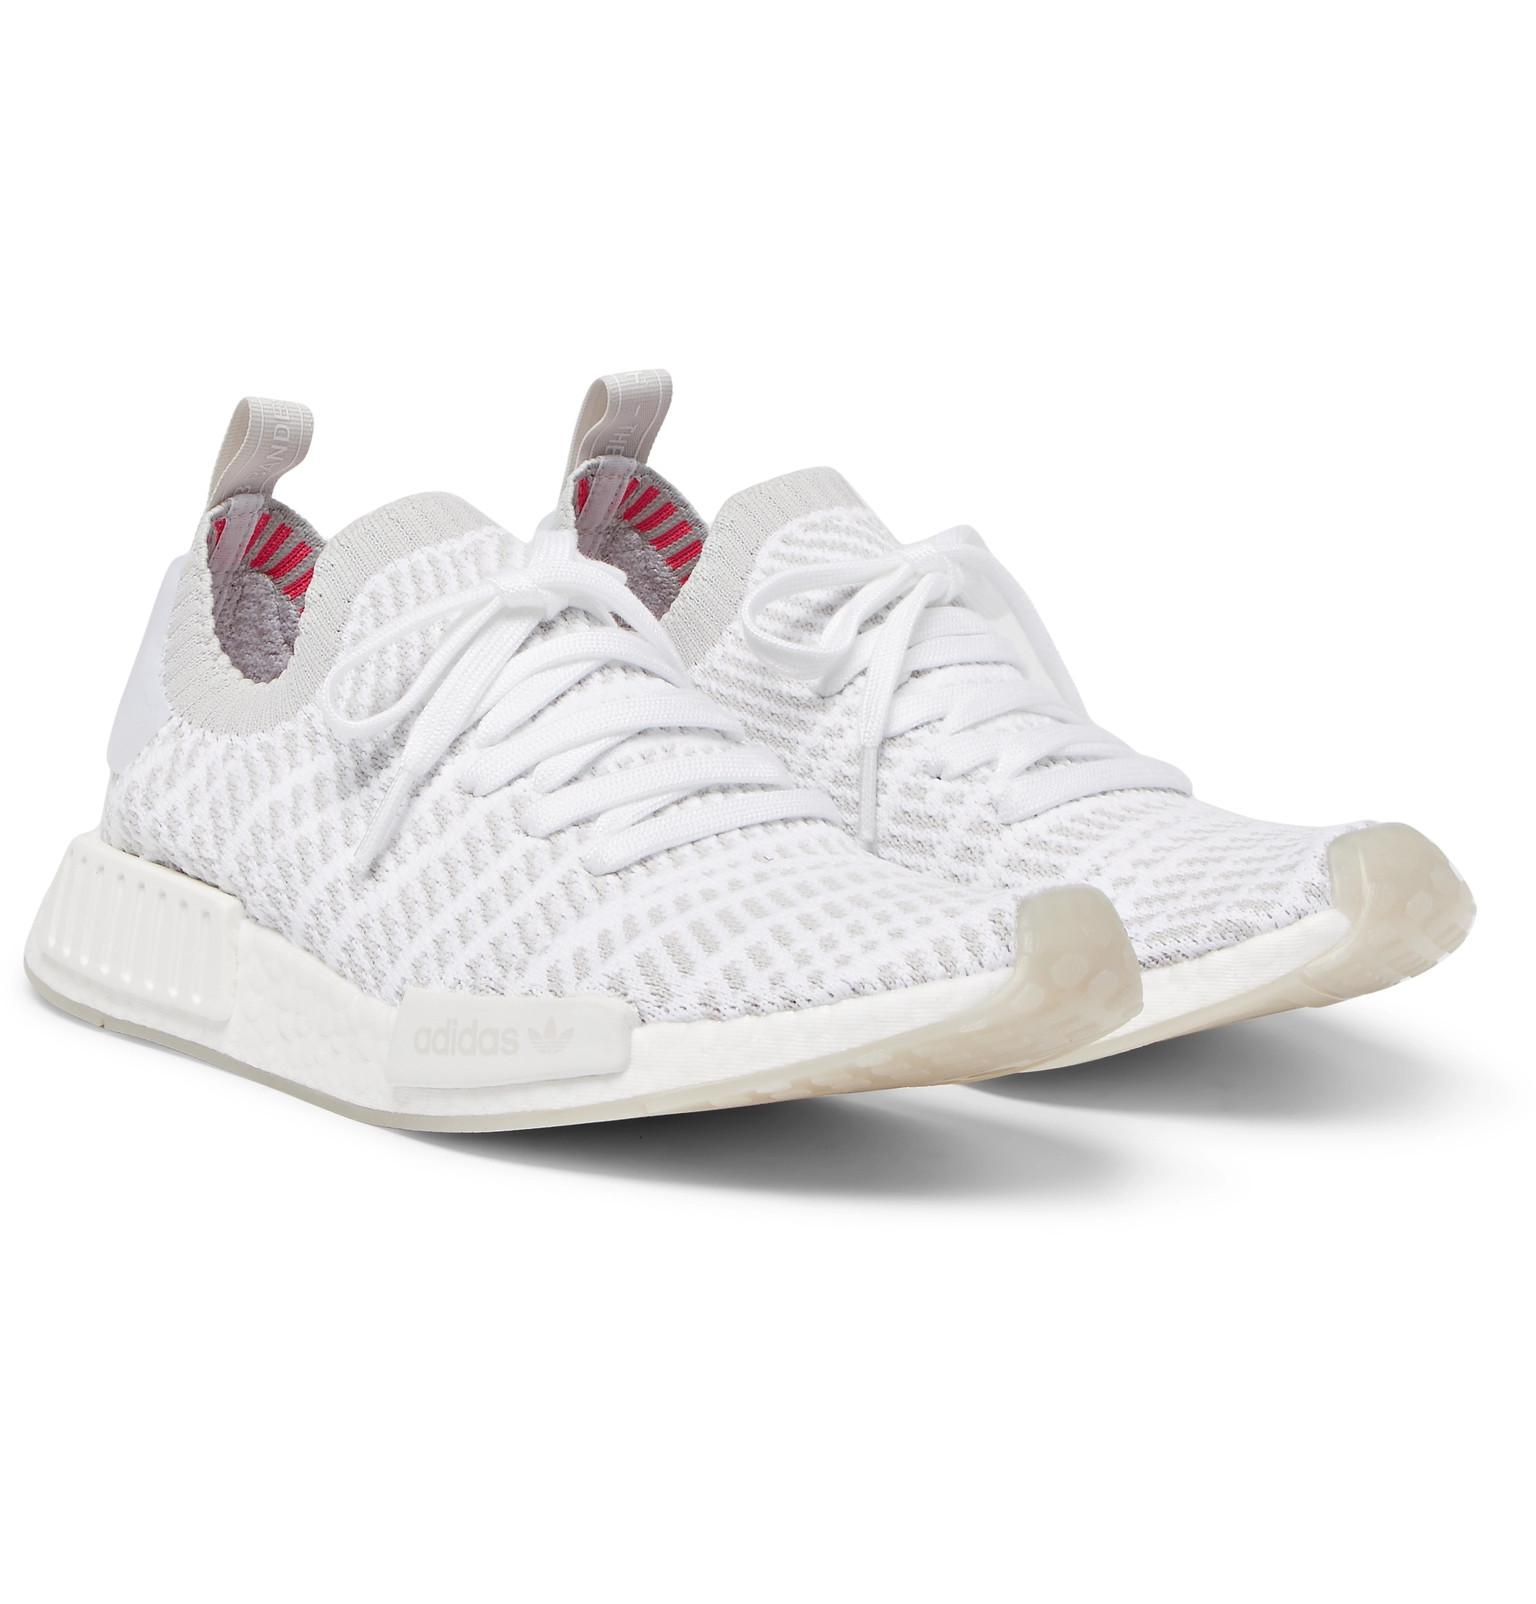 9eb0bf21d5511 Adidas White in Lyst Primeknit Sneakers Originals Nmd Stlt for r1 Men  rx0rp6qw